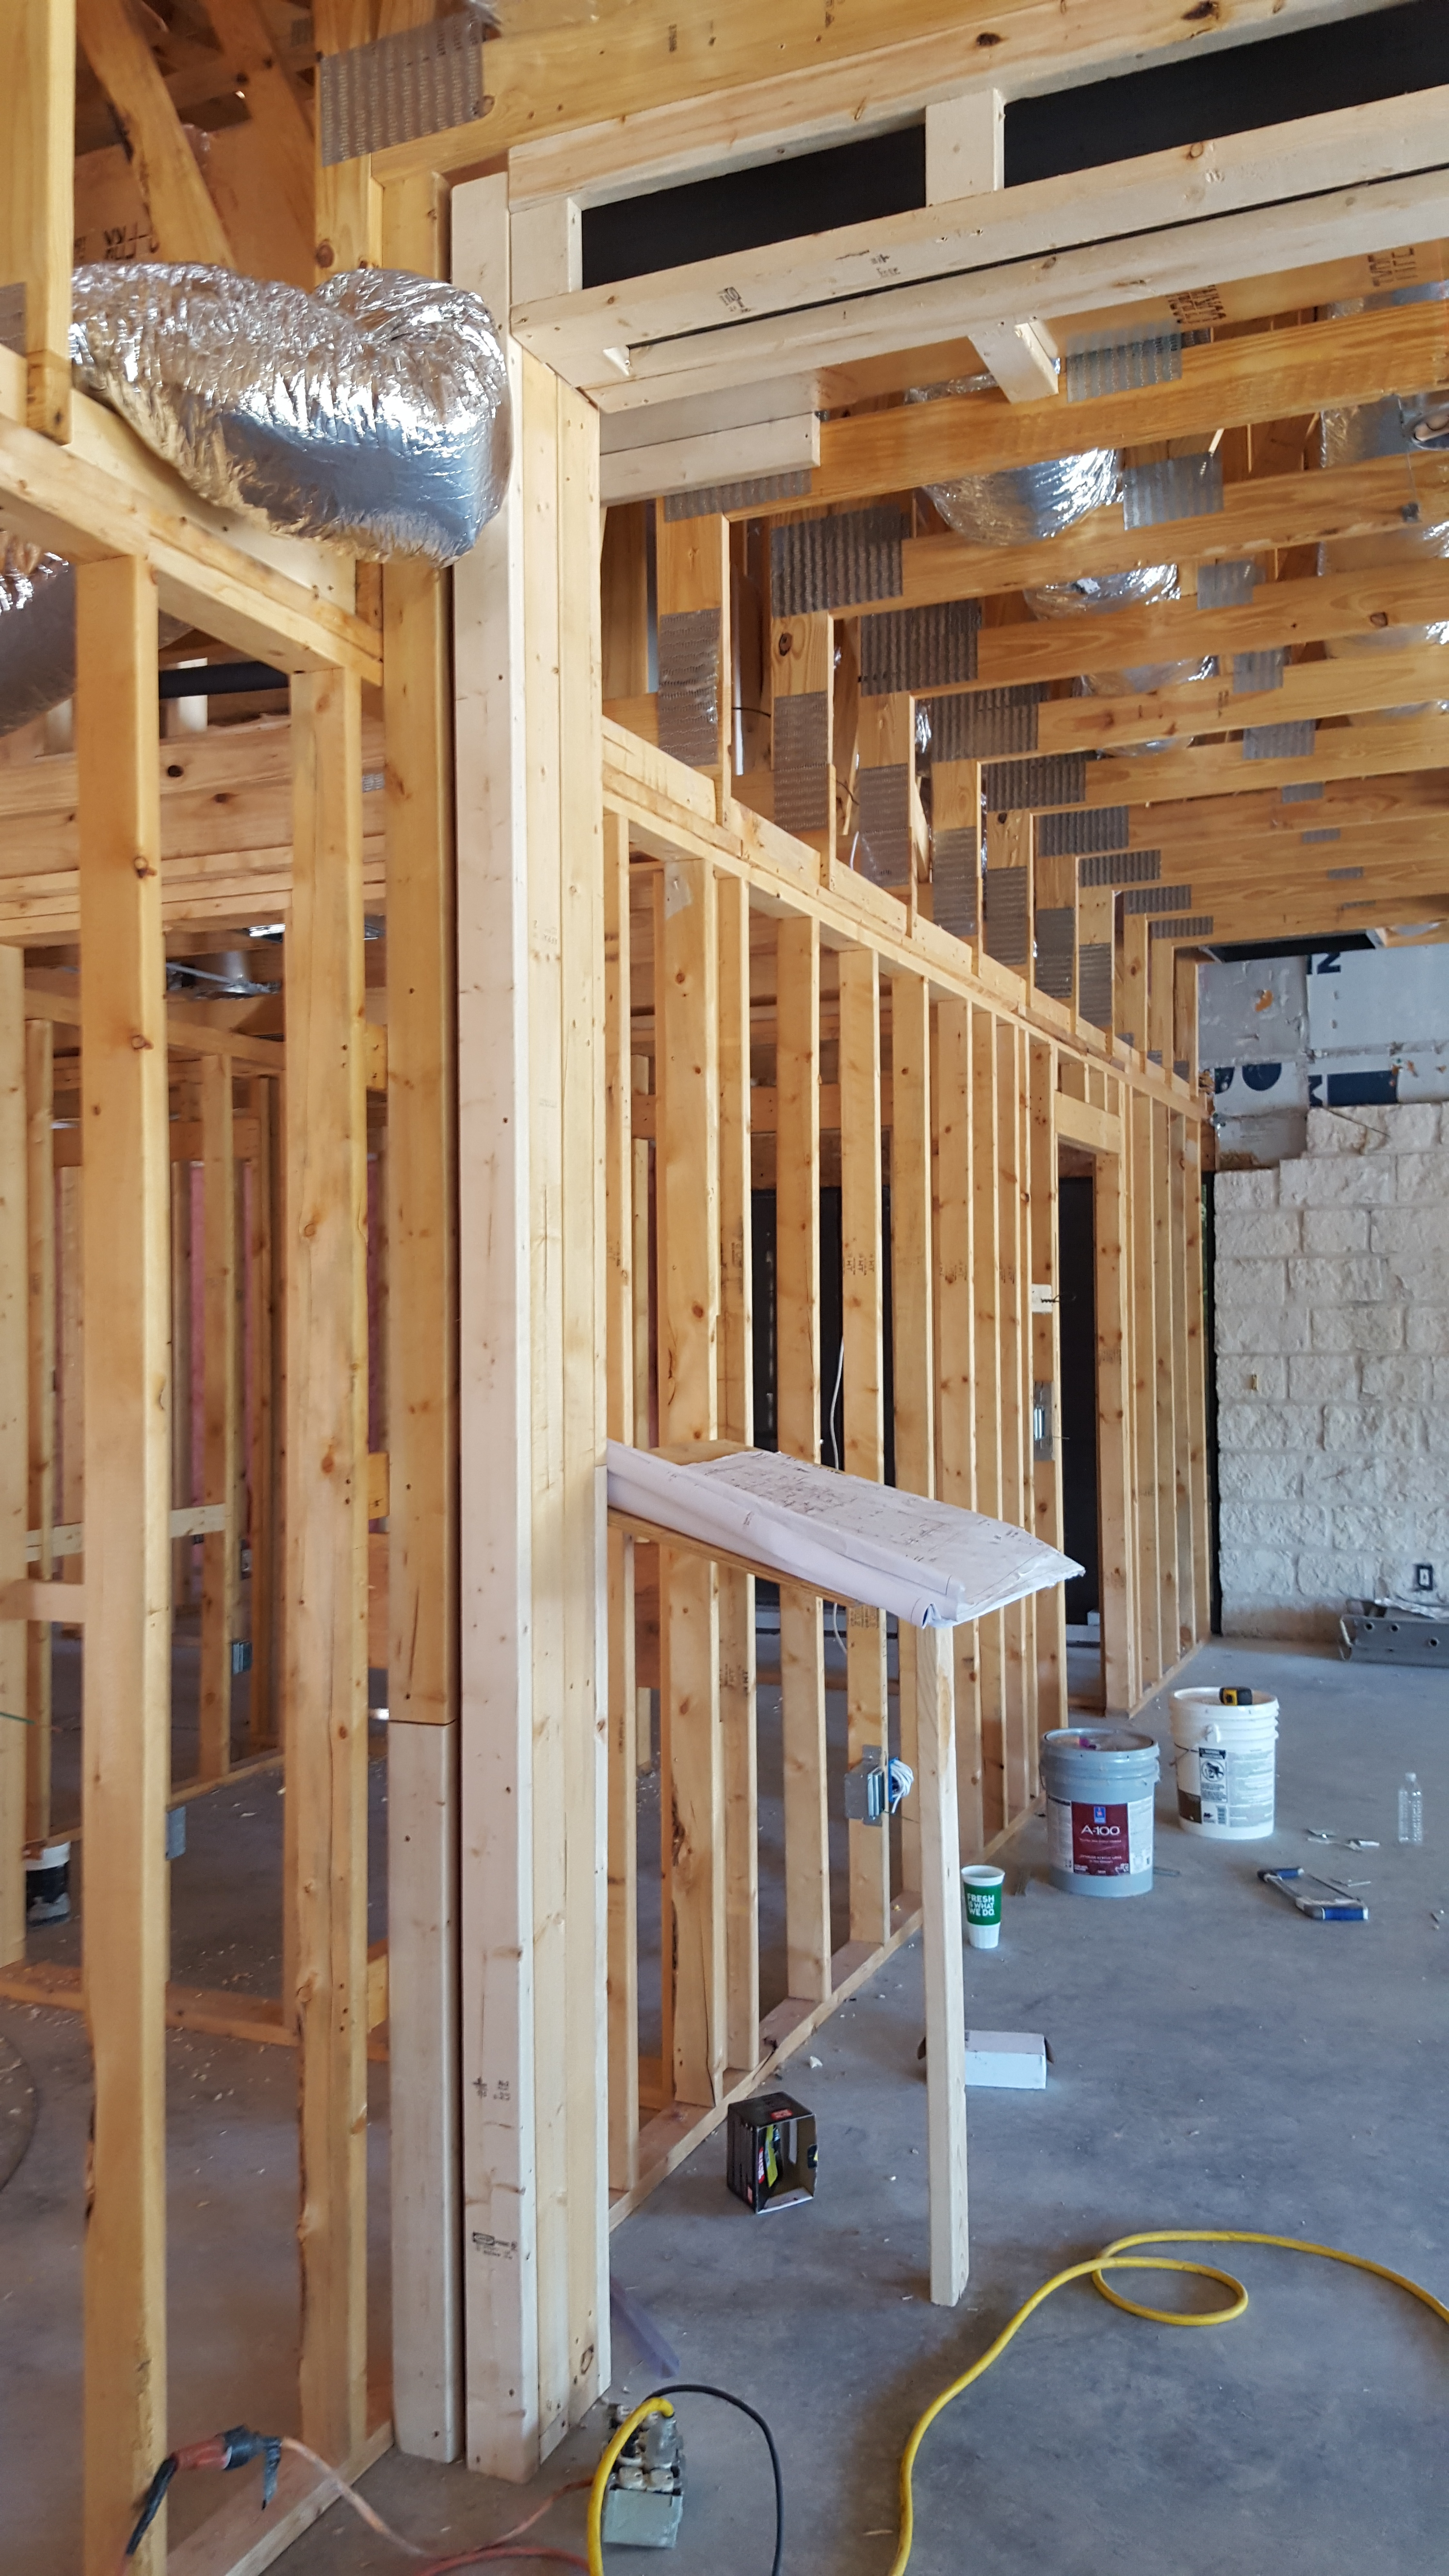 Library Expansion - Construciton - 8-4-16 -02.jpg